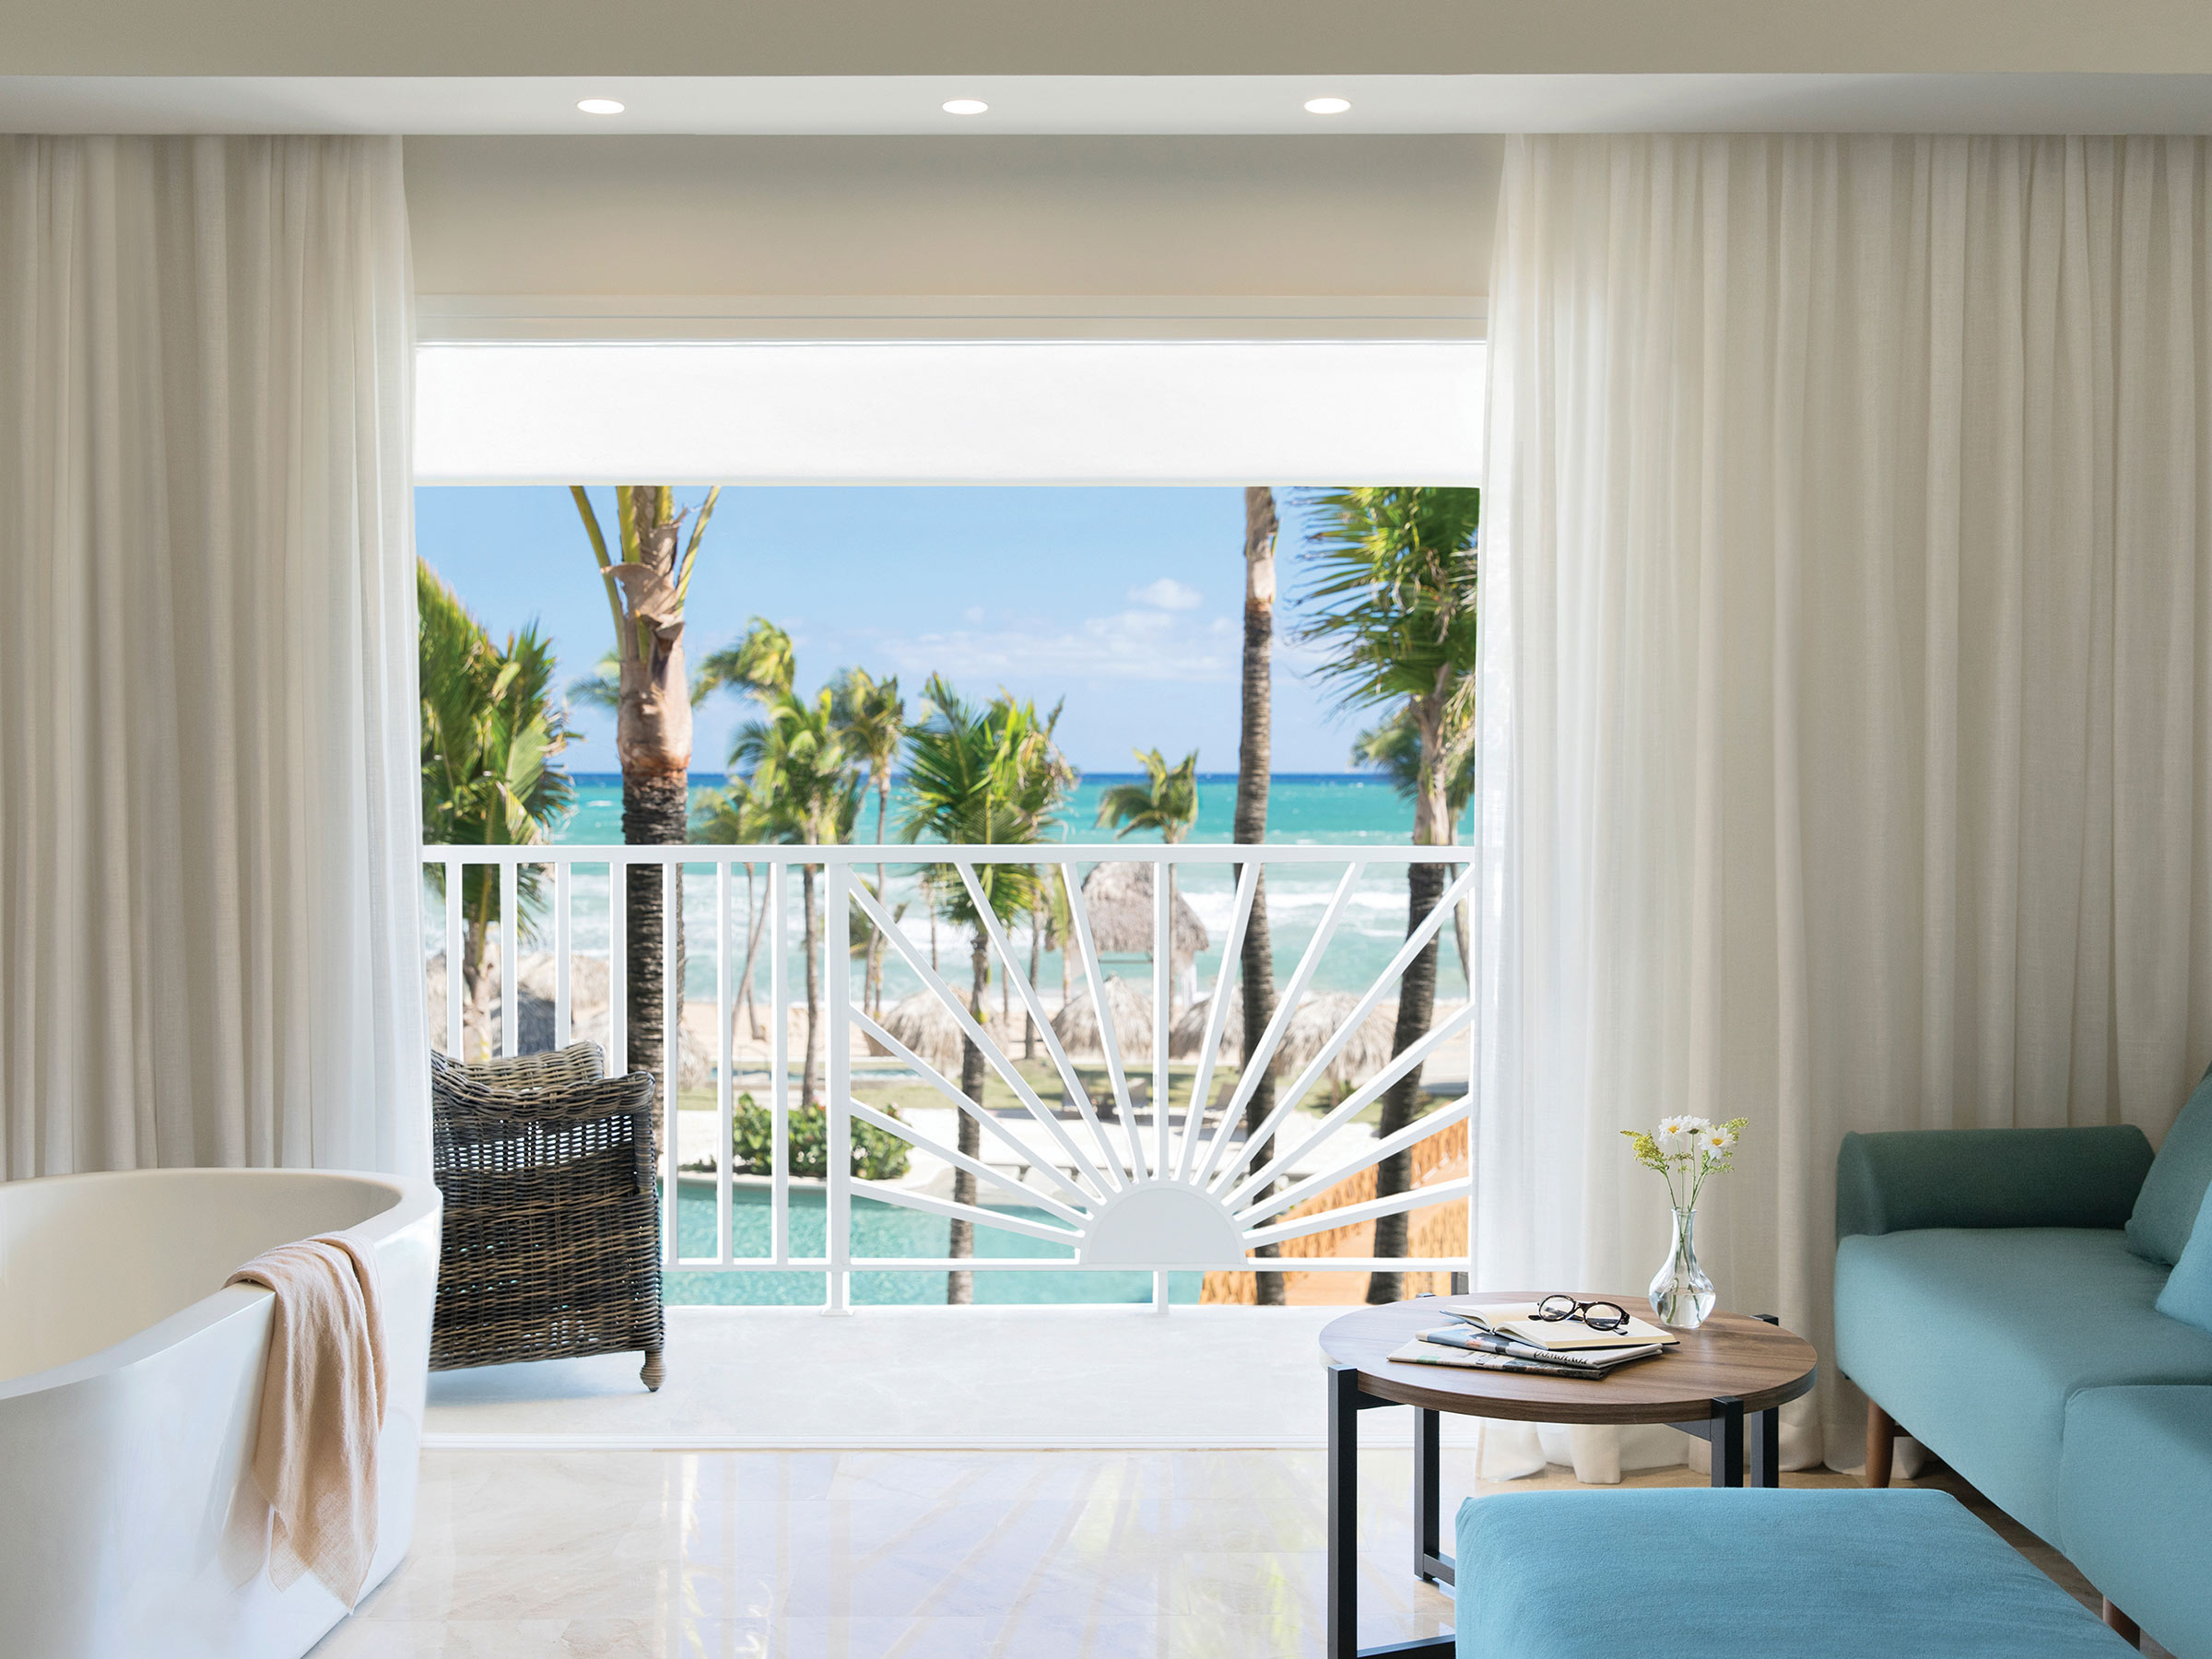 Stay in our Swim Up Suites in our Caribbean Resorts